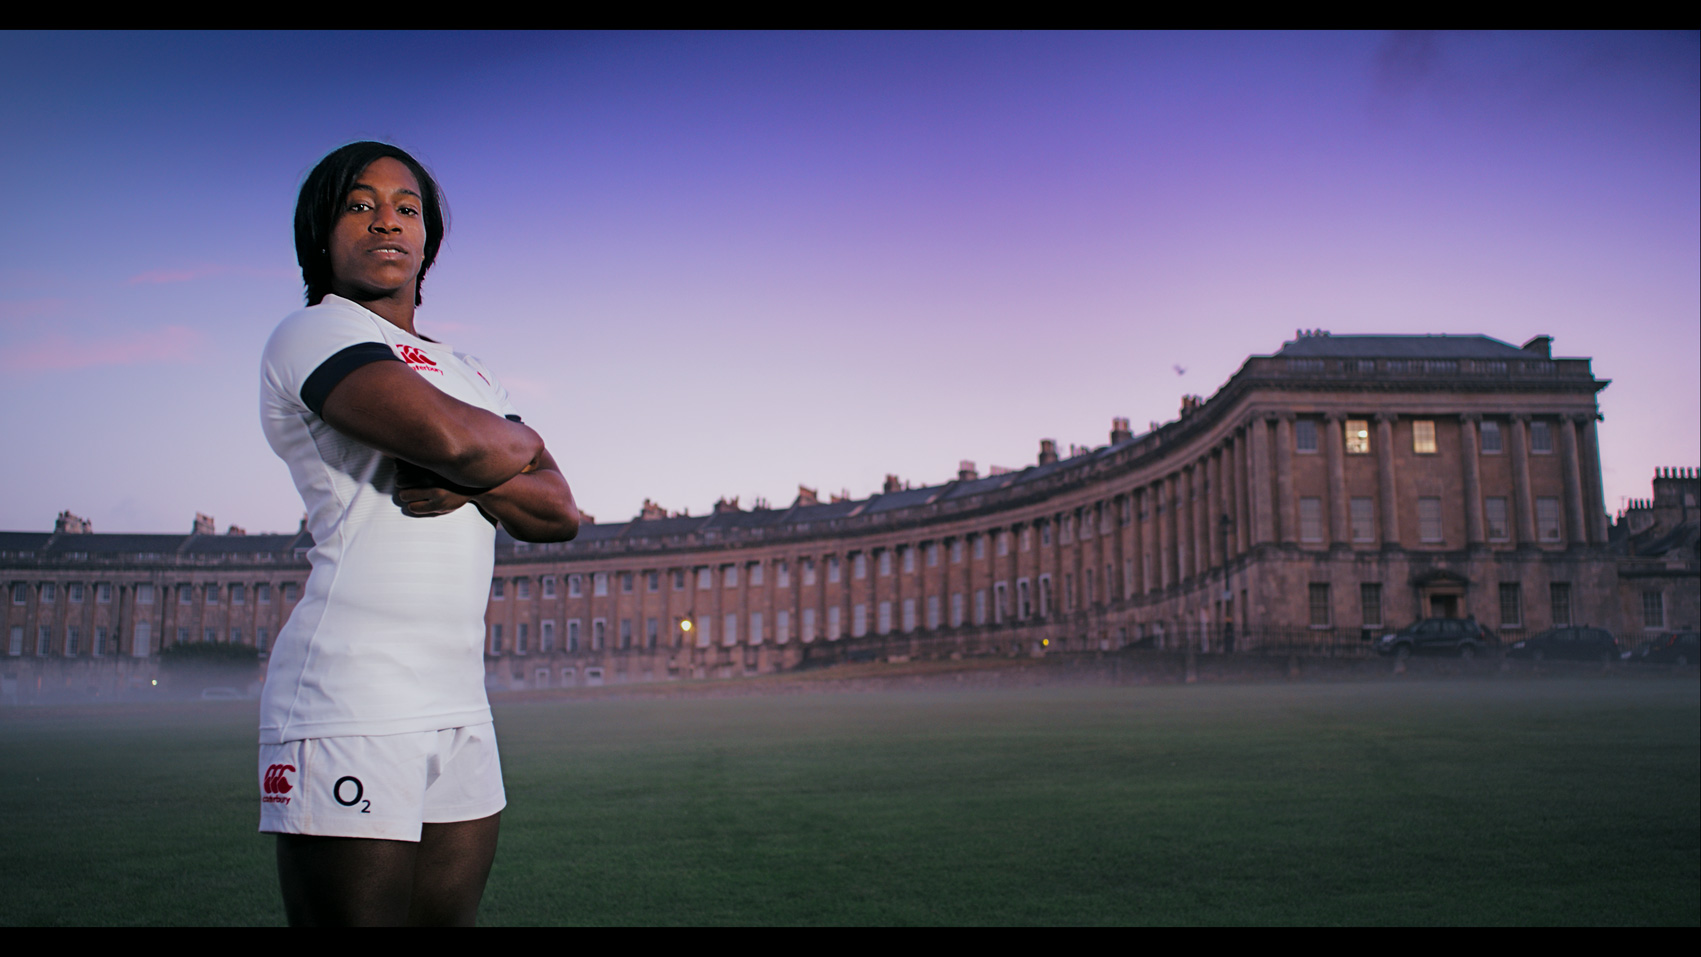 Rugby World Cup TV ad still of Maggi Alphonsi standing in front of the Royal Crescent in Bath